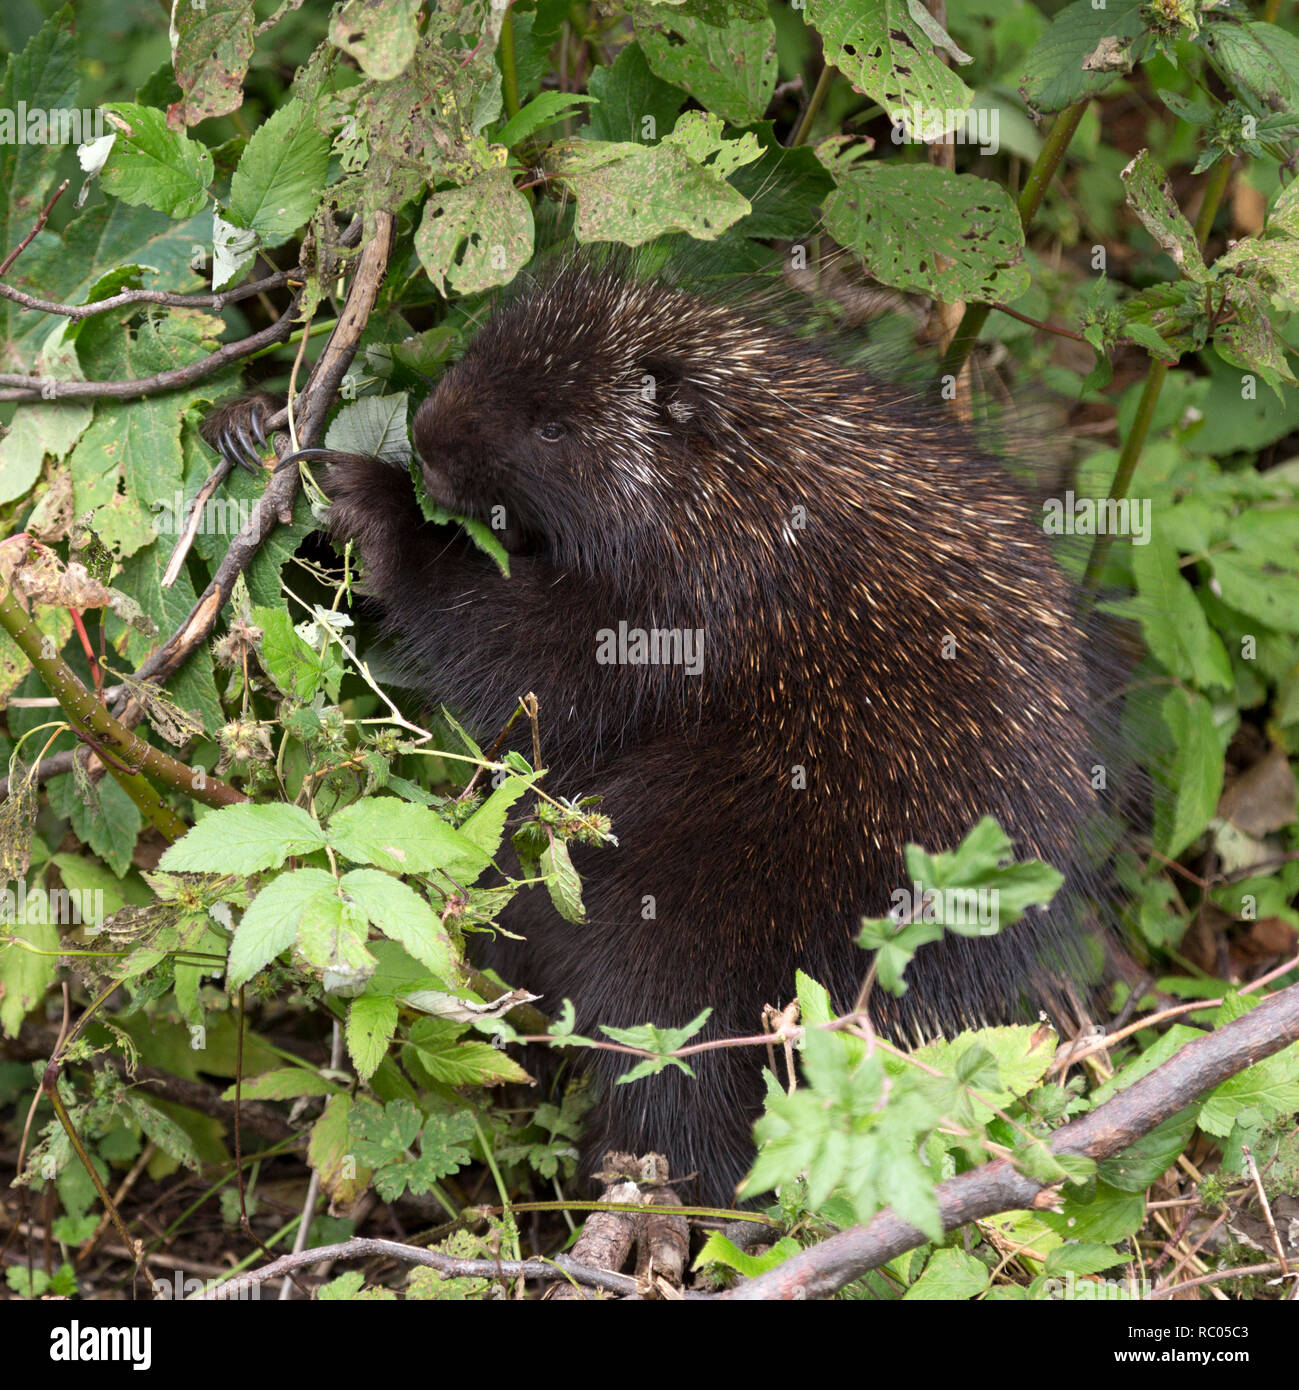 A porcupine forages for food in Forillon National Park on the Gaspé Peninsula of Quebec, Canada. The mammal eats leaves. Stock Photo